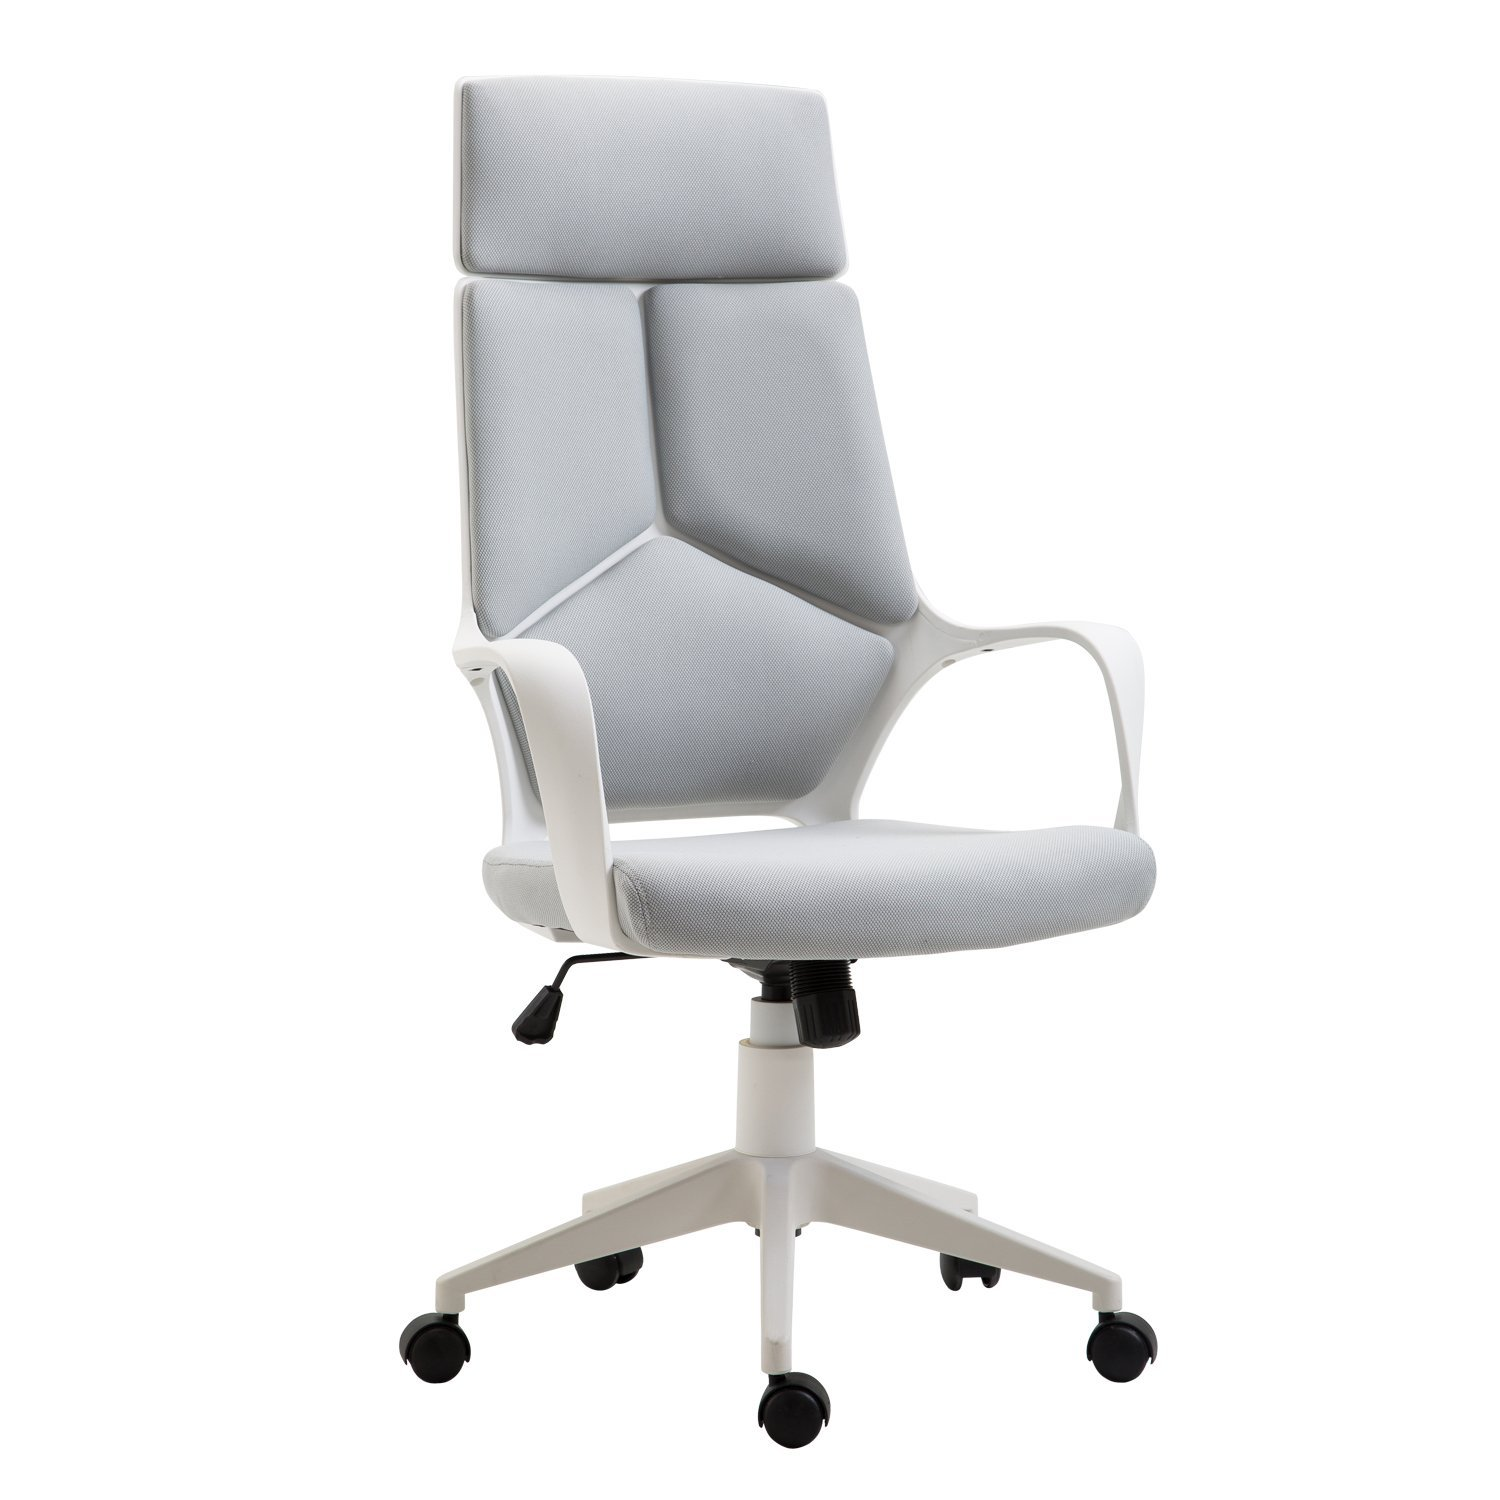 HOMCOM Presidential Adjustable And Swivel Office Chair Mesh Fabric Gray